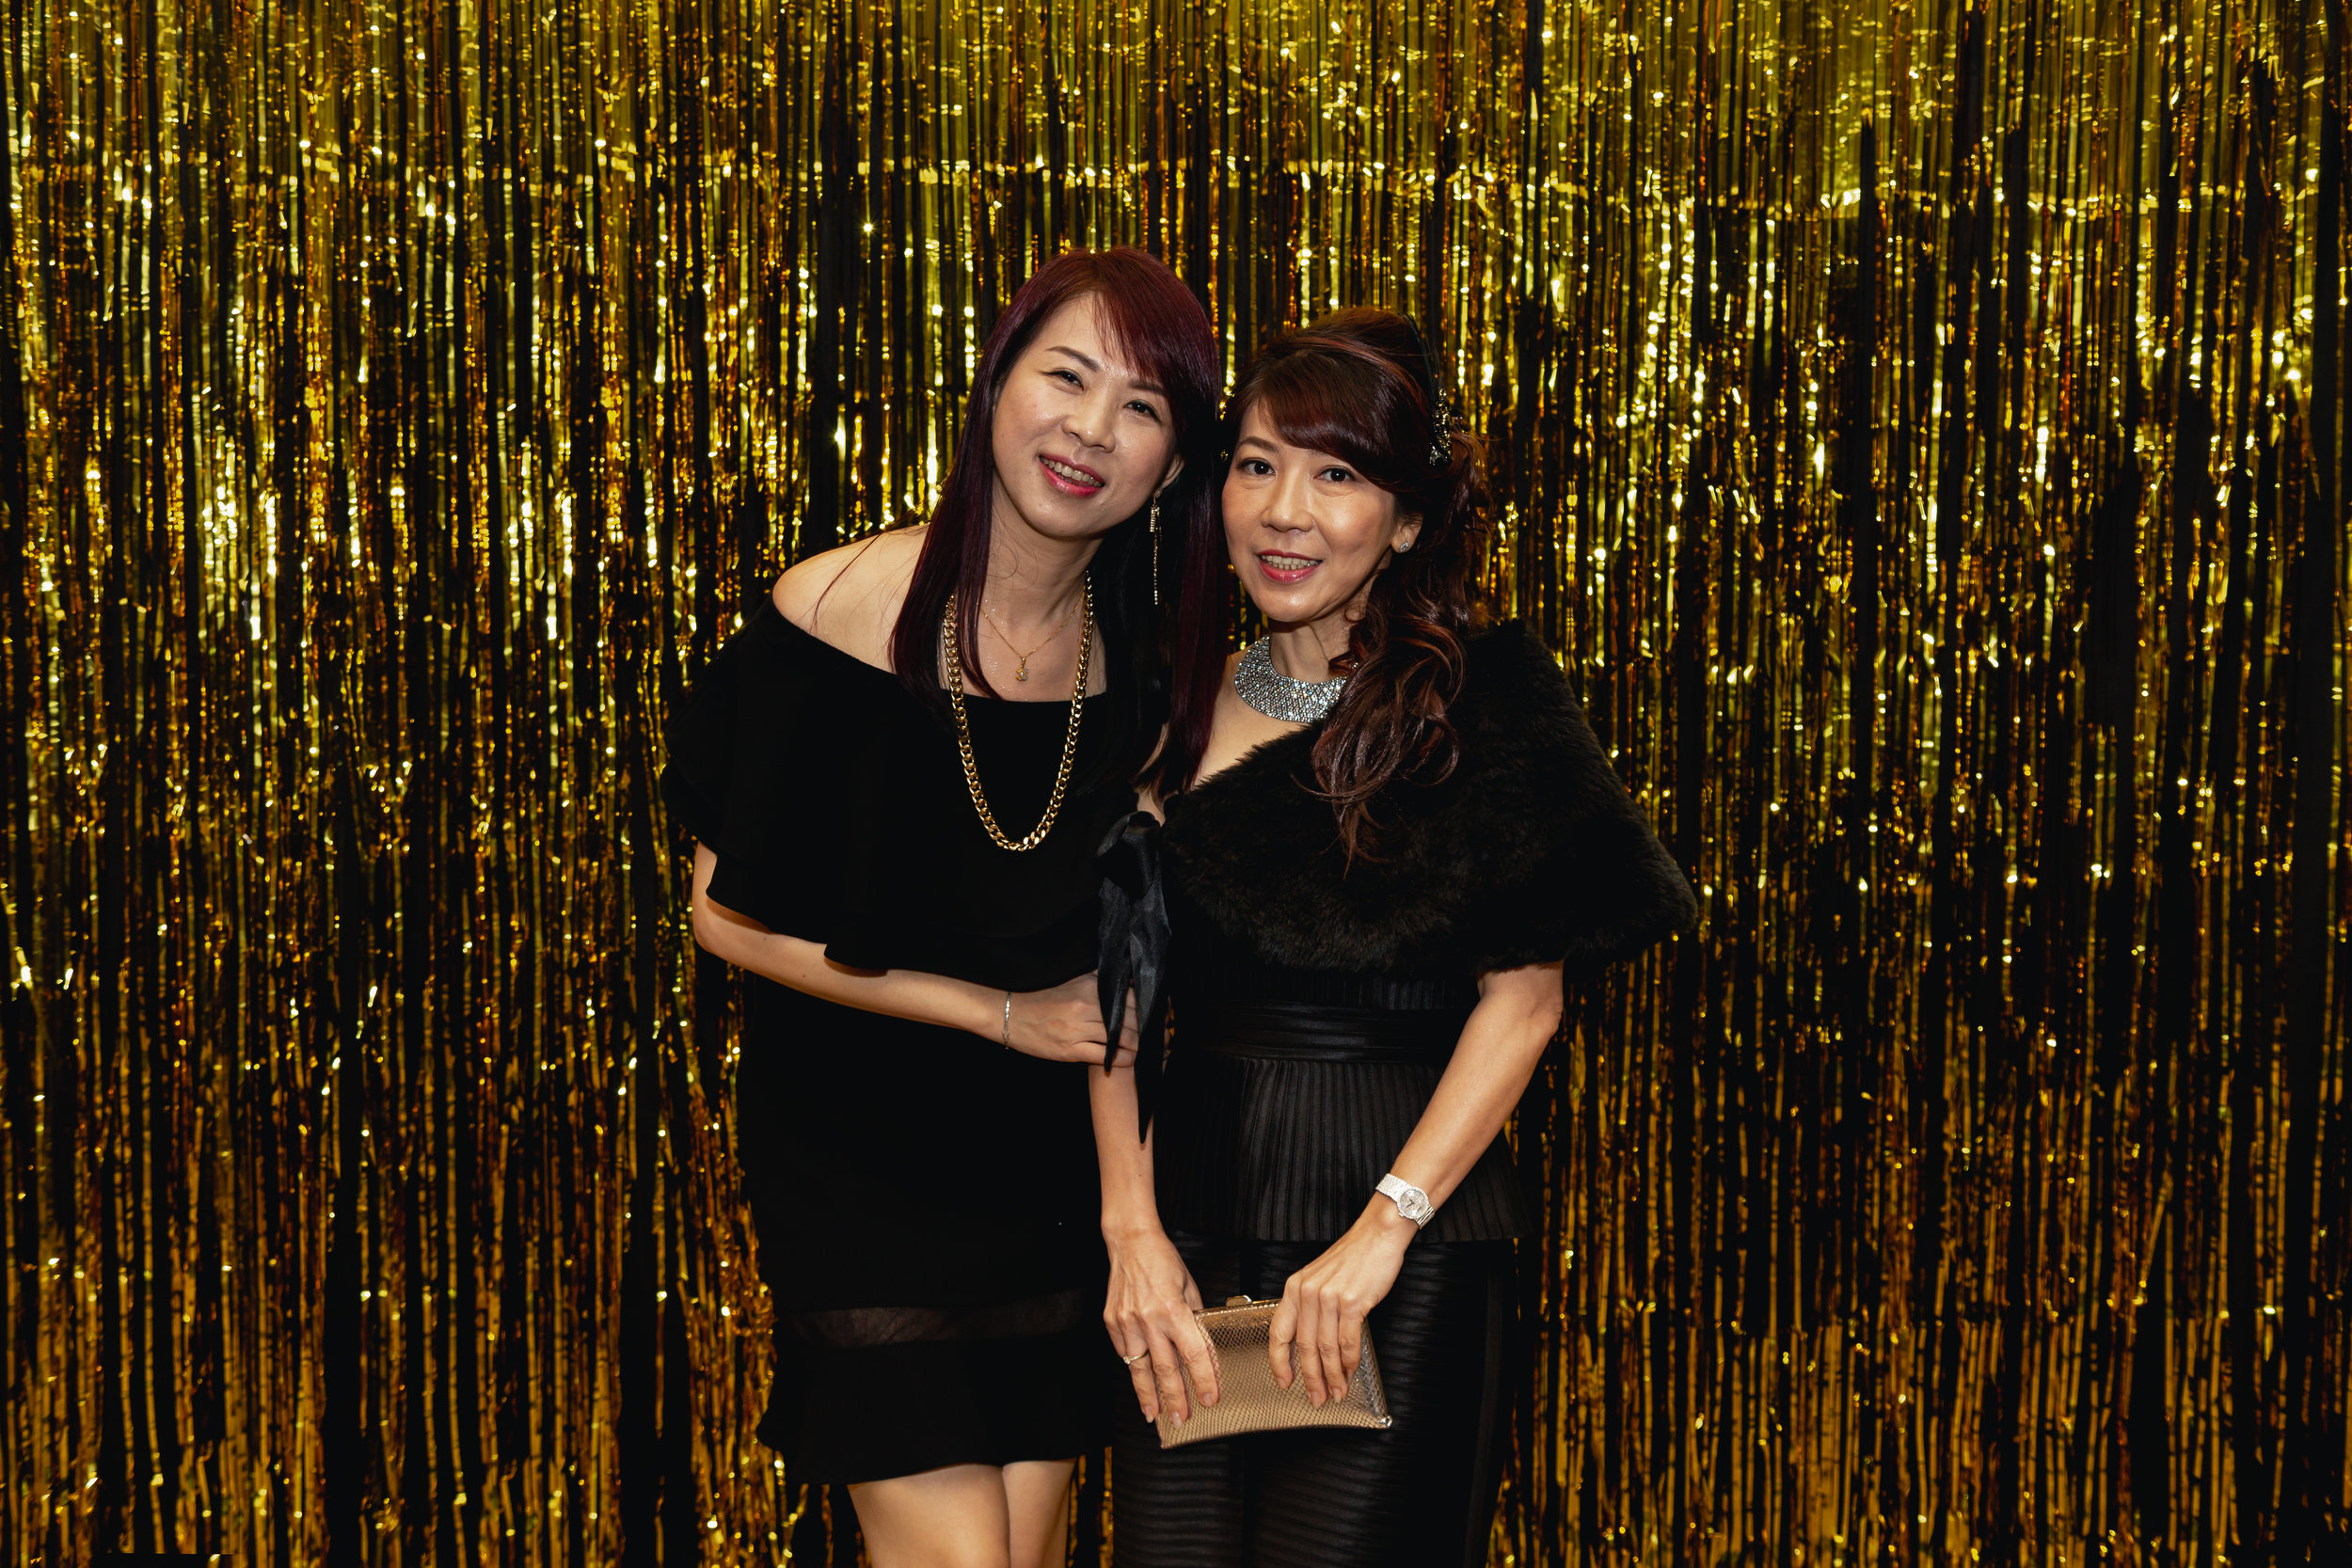 Photo Booth - No event is complete without a photo booth. Double the fun and triple the memories with our photo booths that give your guests the photos of their lifetime!